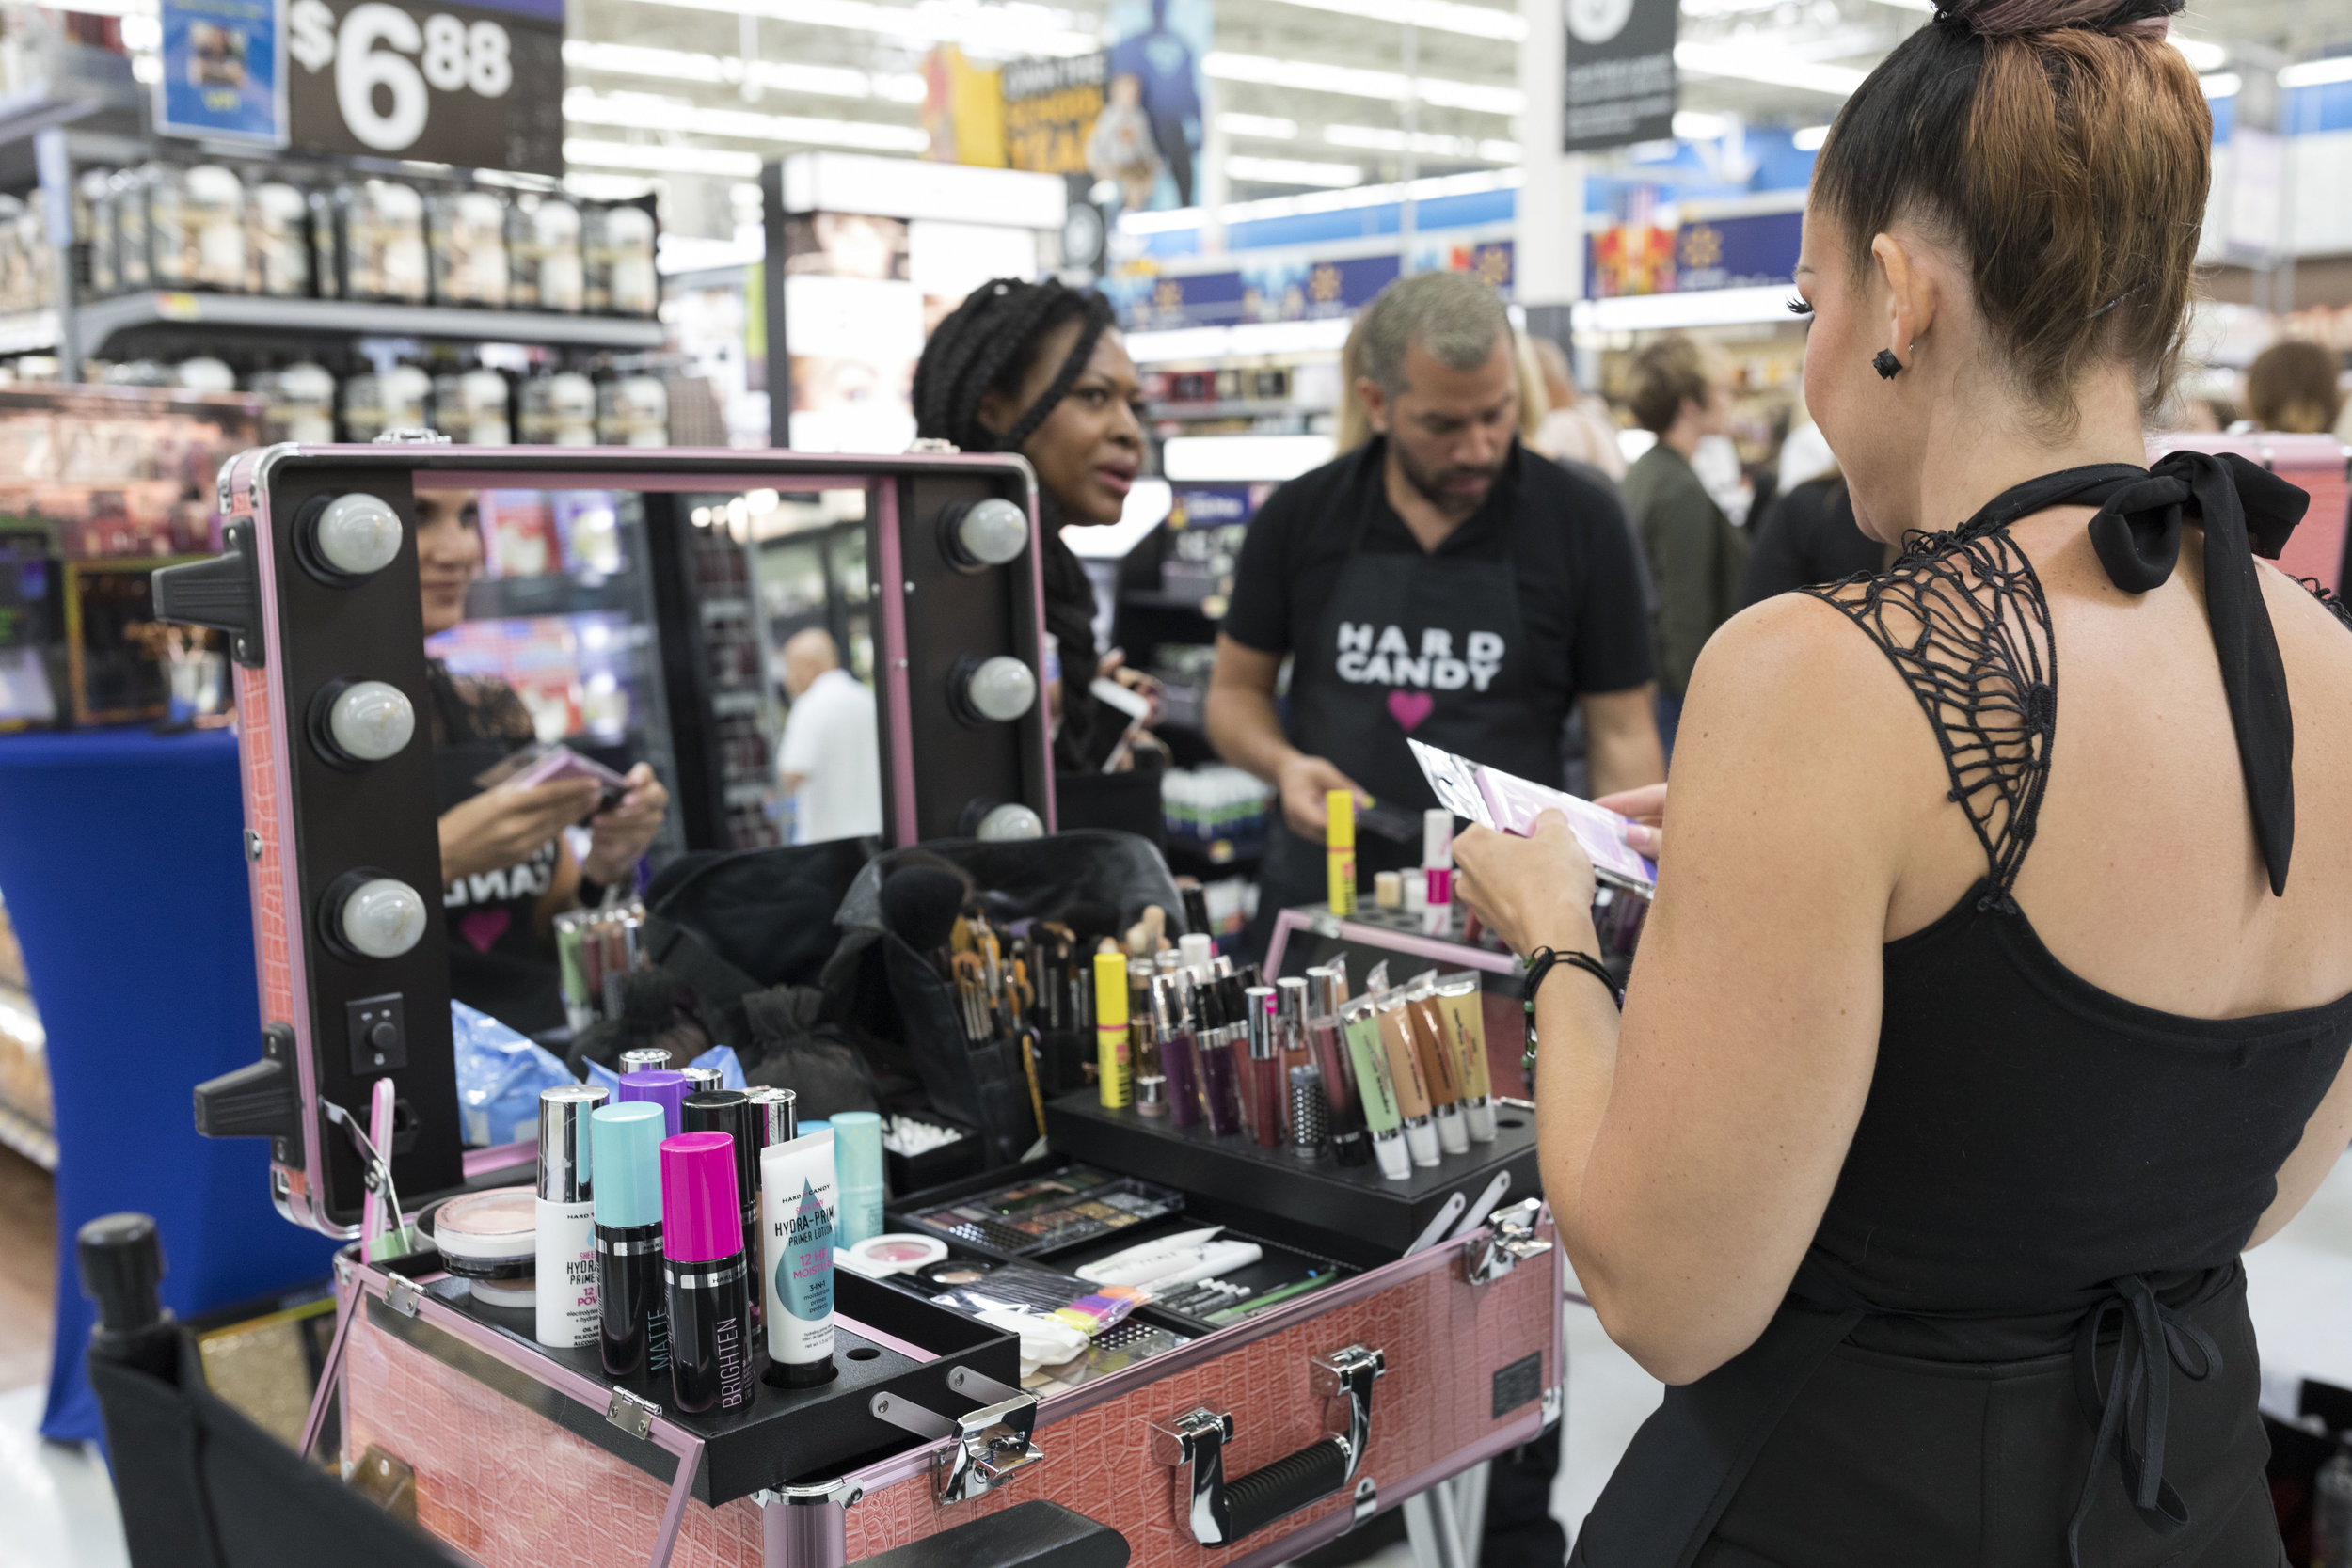 Walmart Fall Beauty Preview x Krity S